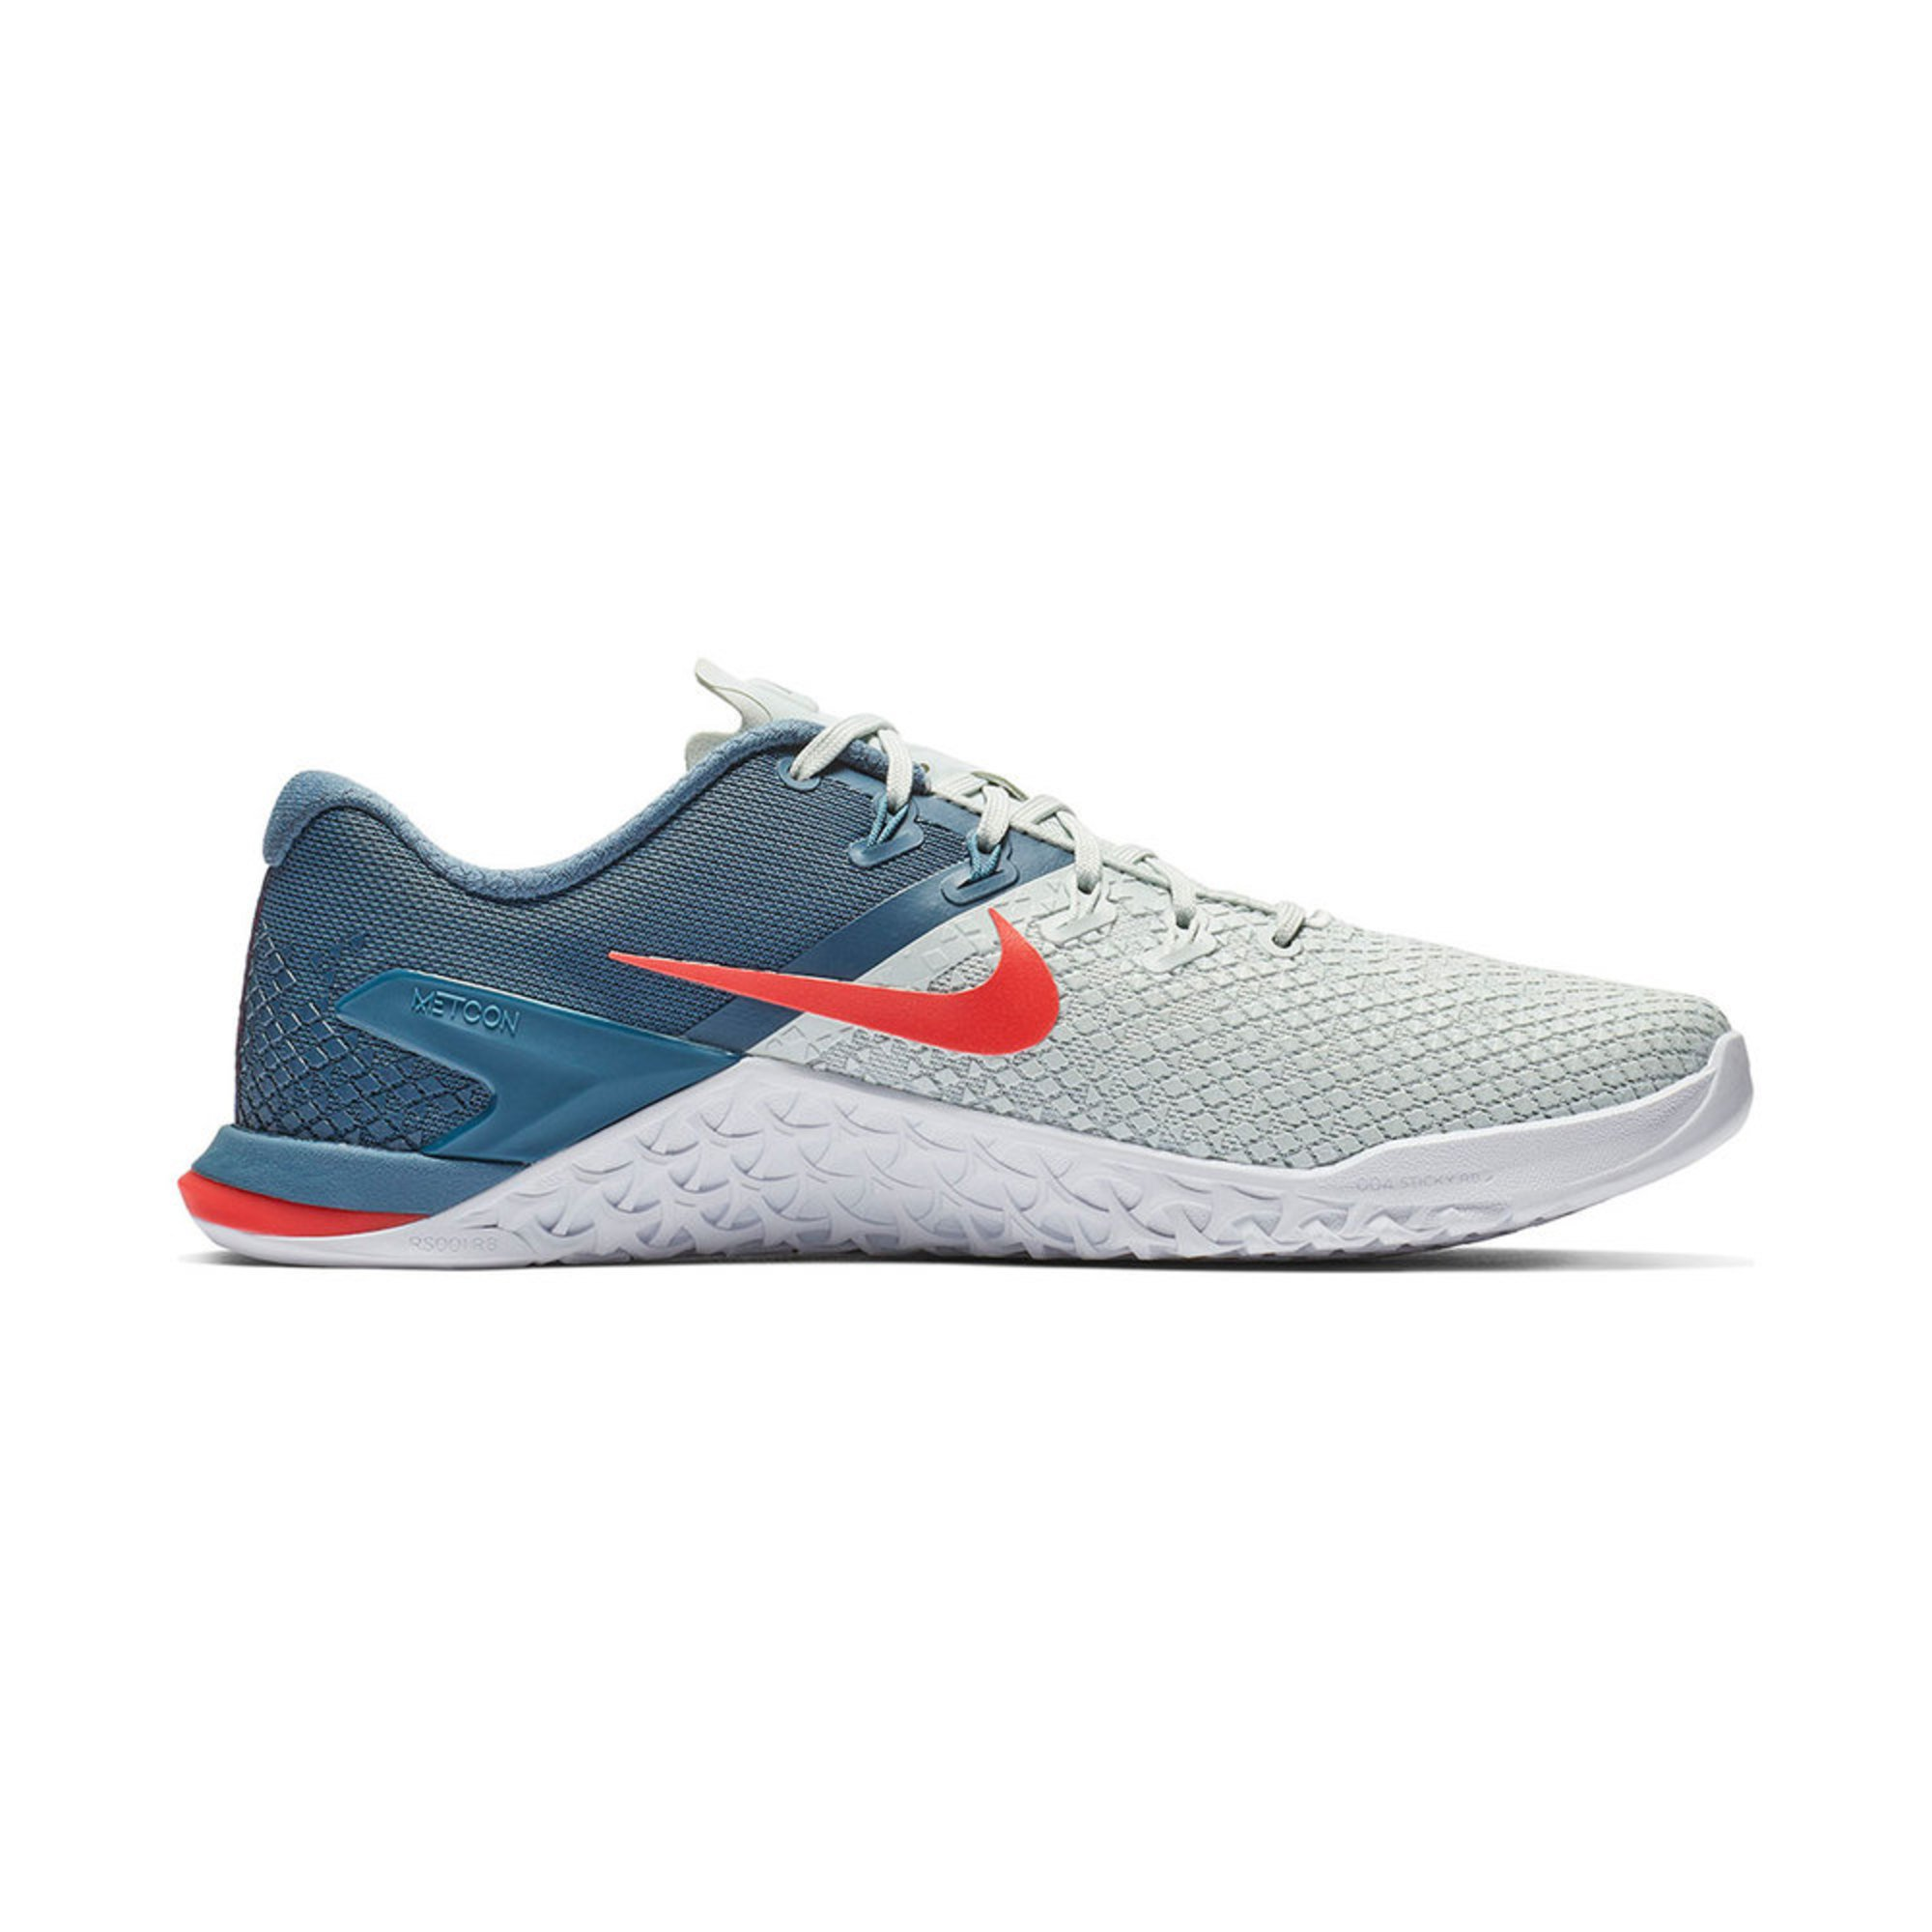 94c719ed5 Nike Women's Metcon 4 Xd Training Shoe | Women's Training Shoes ...